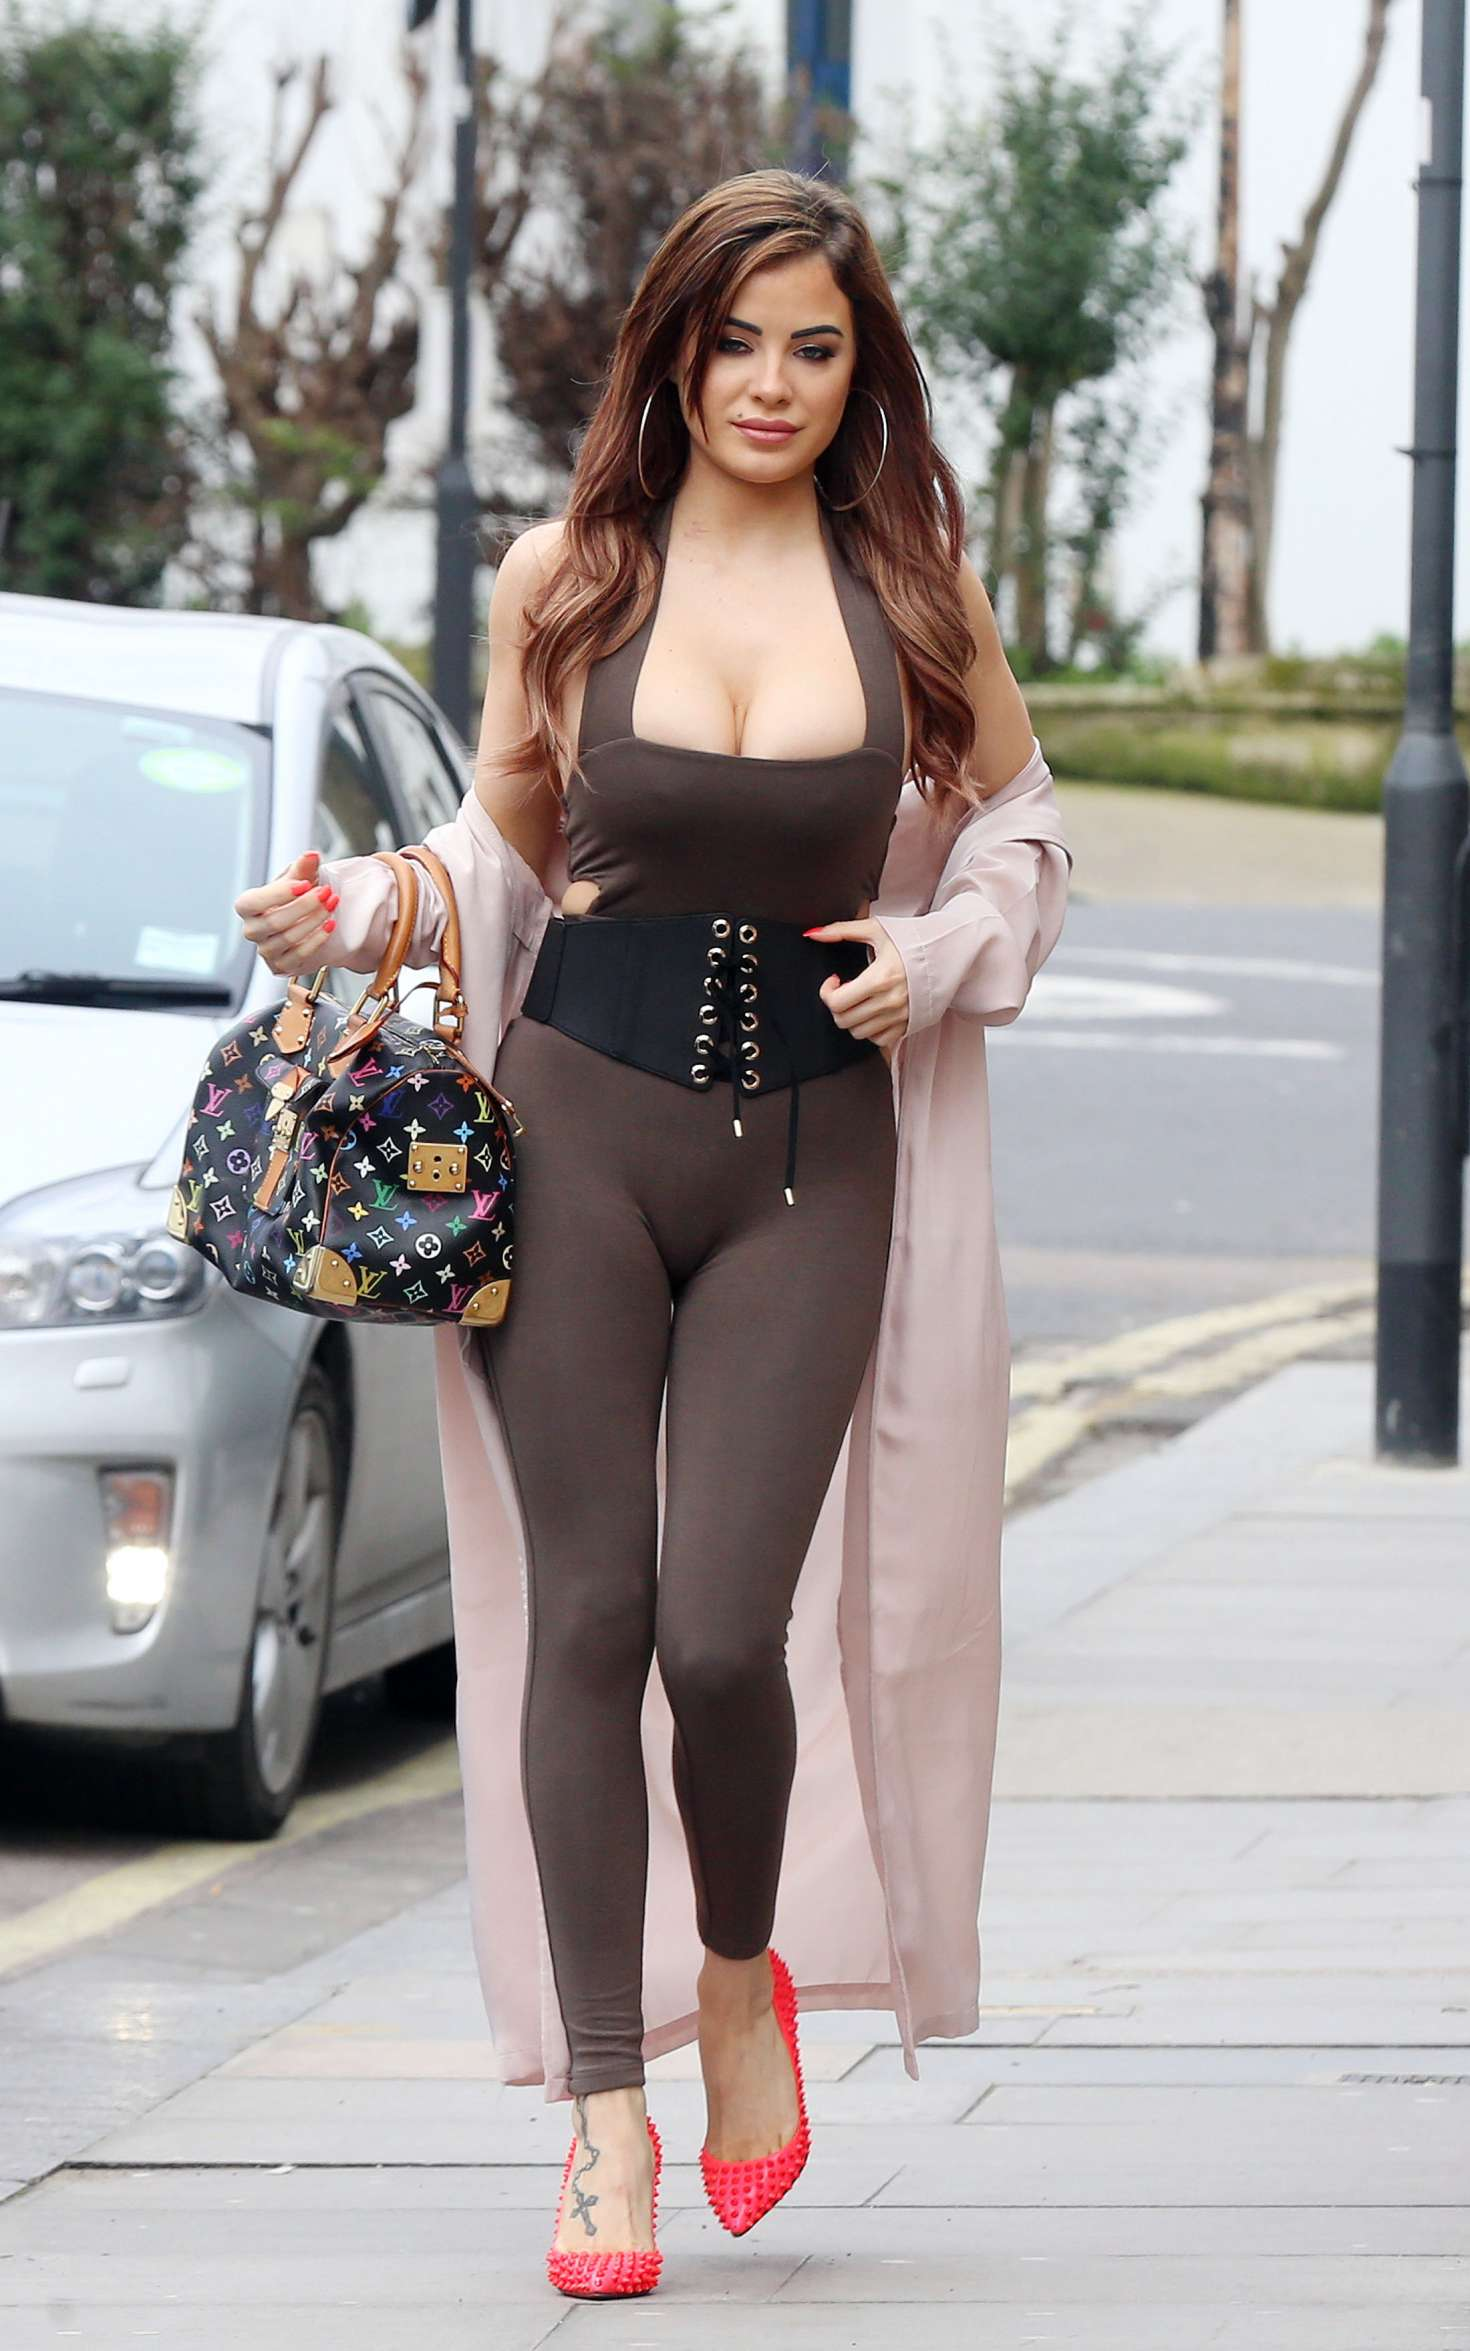 Carla Howe in Tights 17  GotCeleb